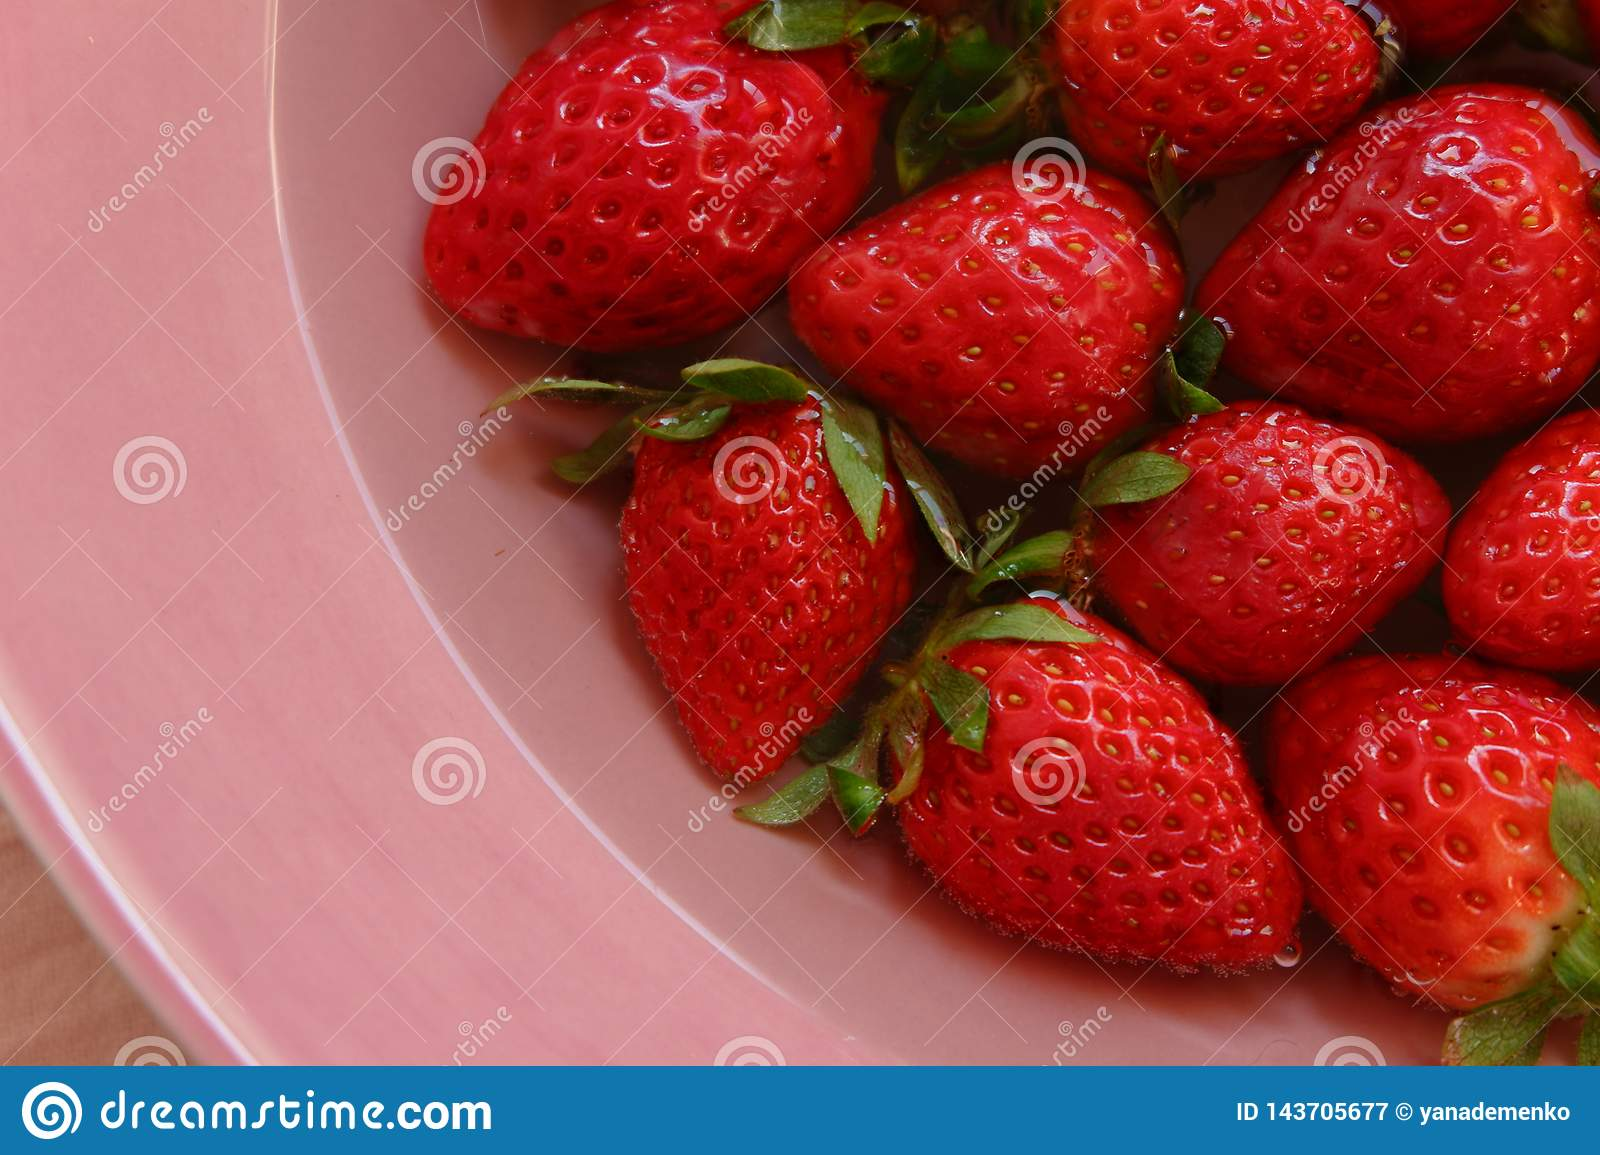 Red strawberies of the different size on the plate